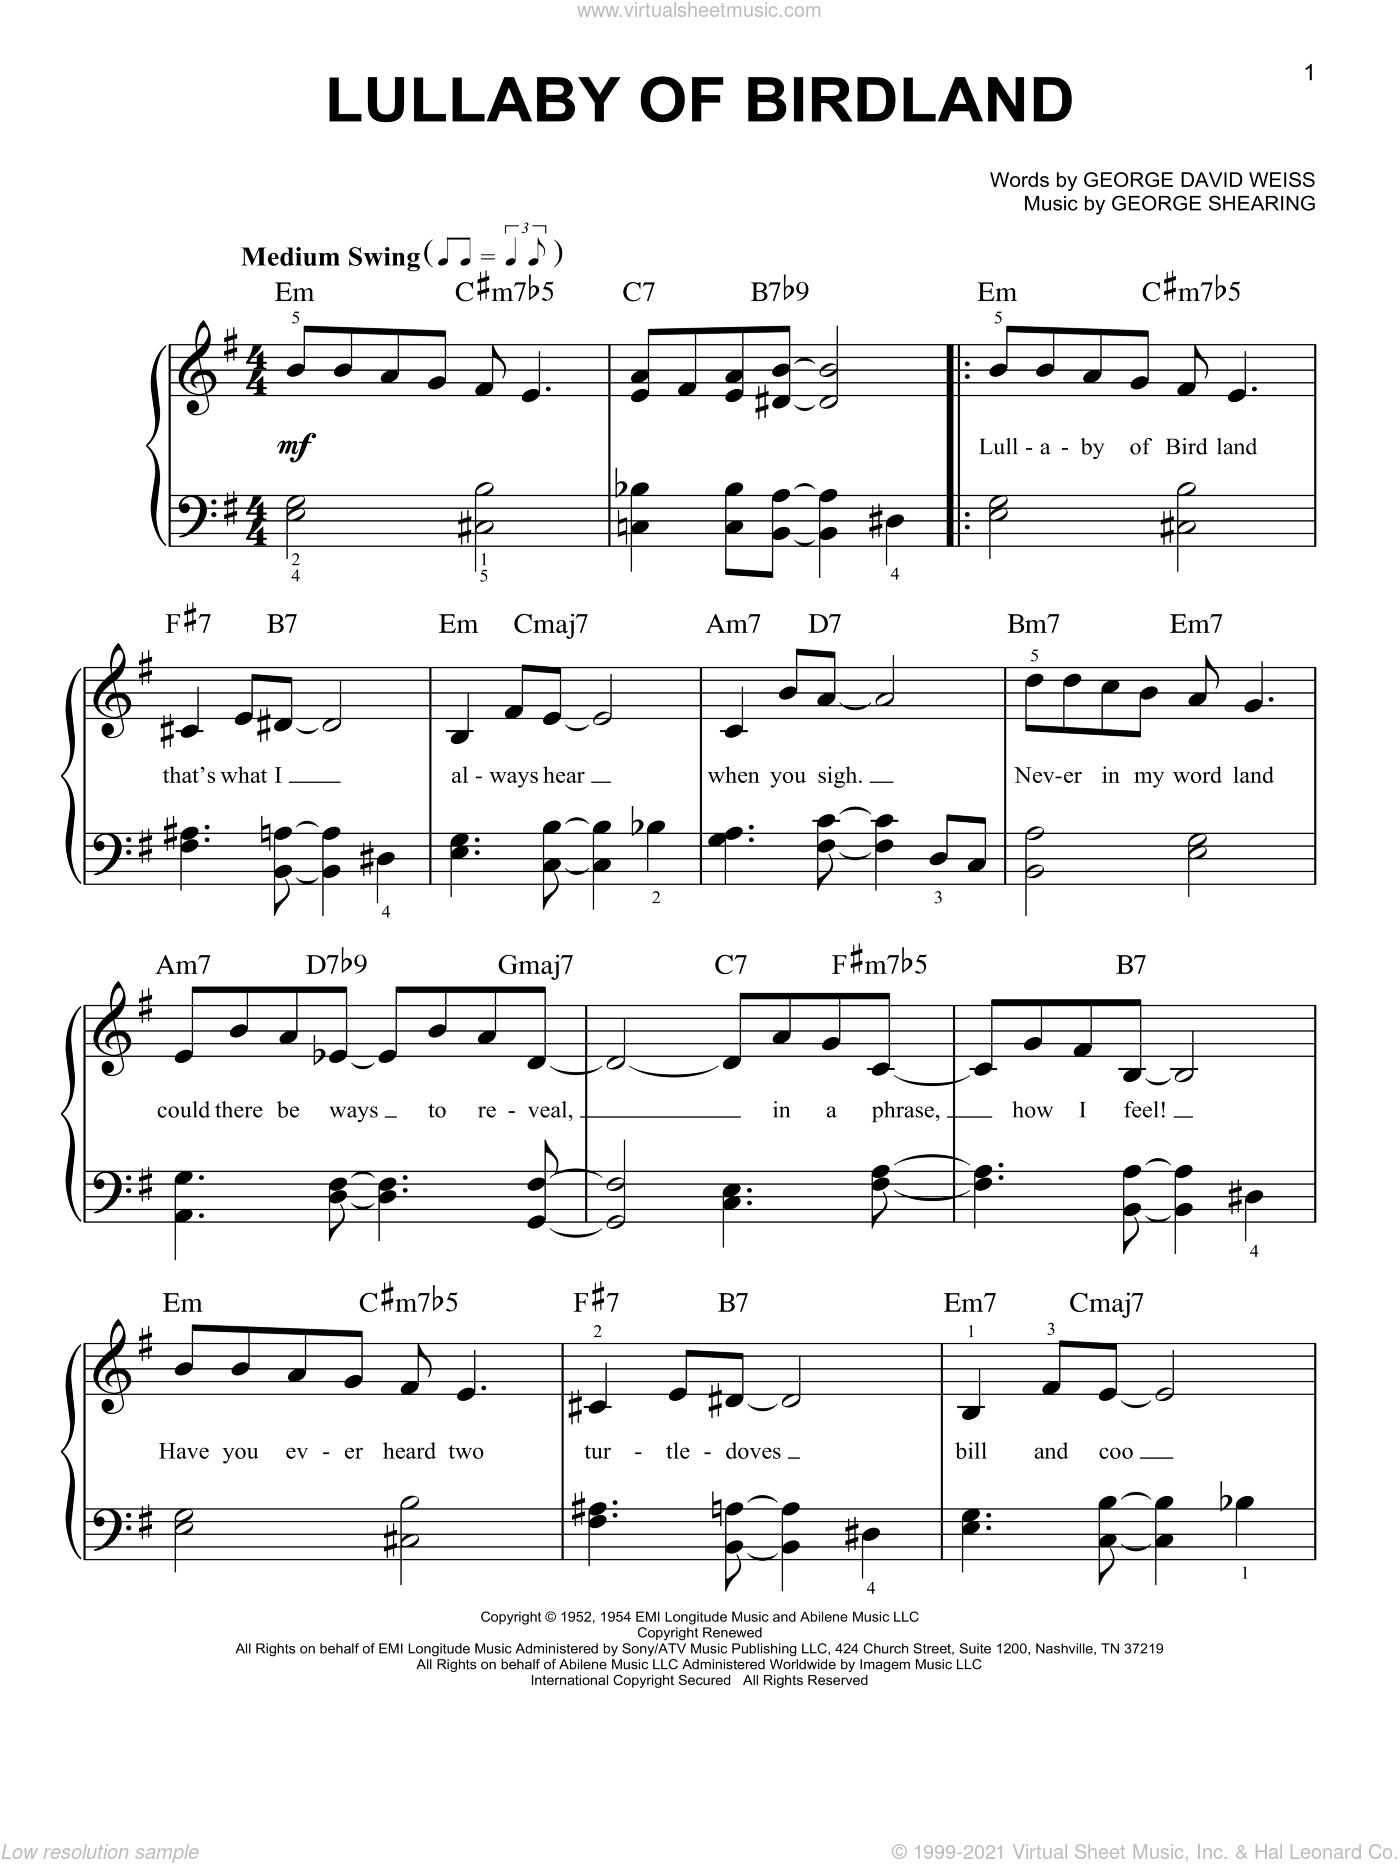 Lullaby Of Birdland, (easy) sheet music for piano solo by George Shearing and George David Weiss, easy skill level